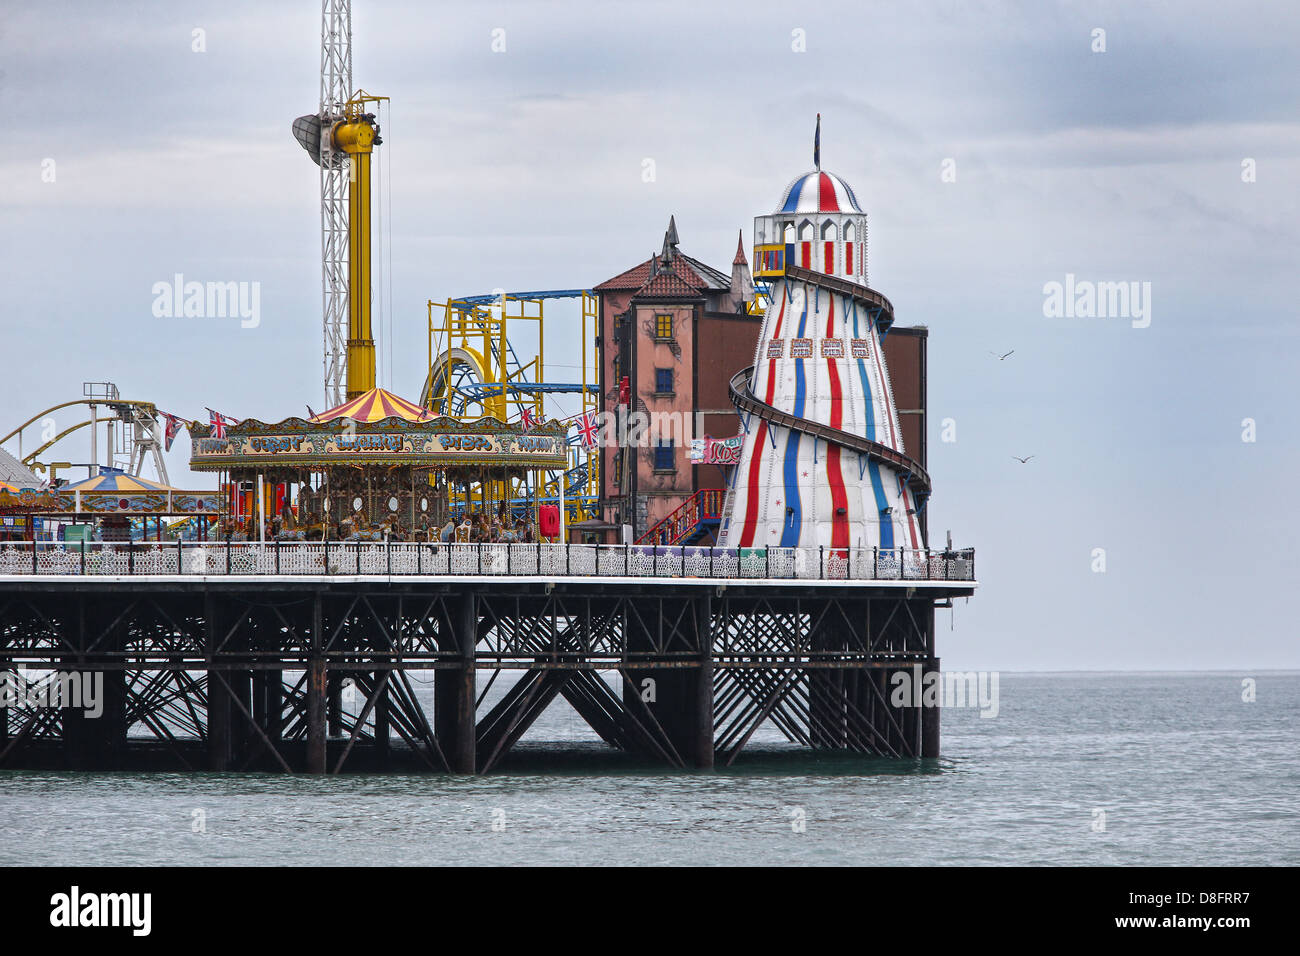 Helter Skelter and Merry go round on Brighton Pier. Stock Photo